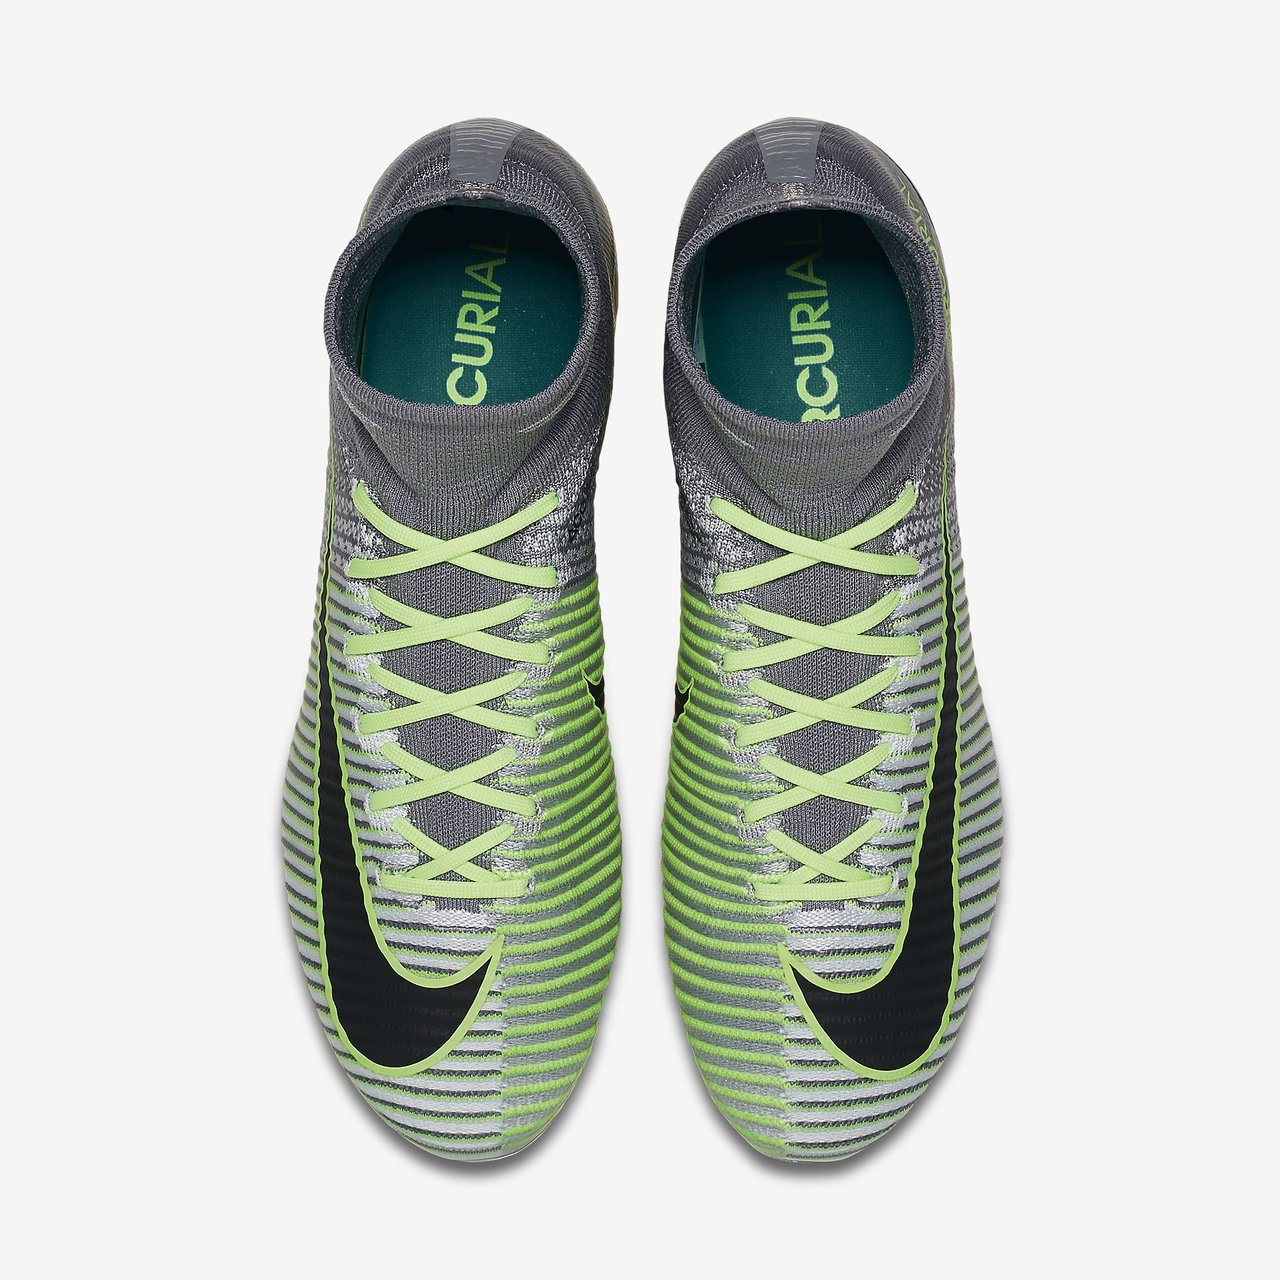 promo code 3e38d 63b05 ... Click to enlarge image  nike mercurial superfly v fg elite pack pure d.jpg ...